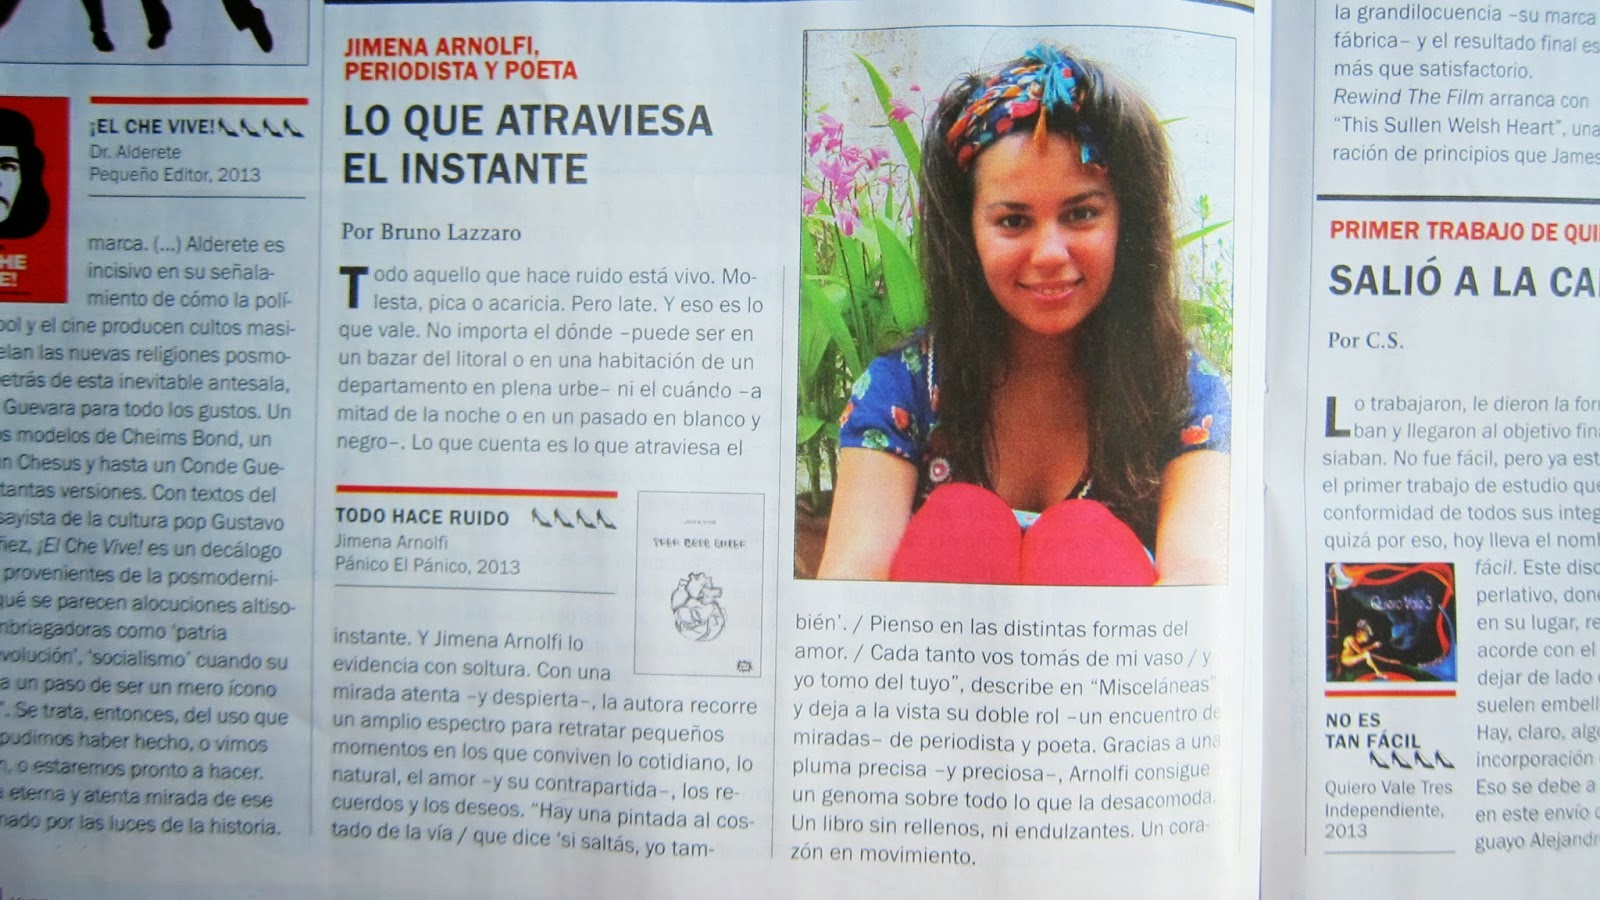 Revista Veintitrés